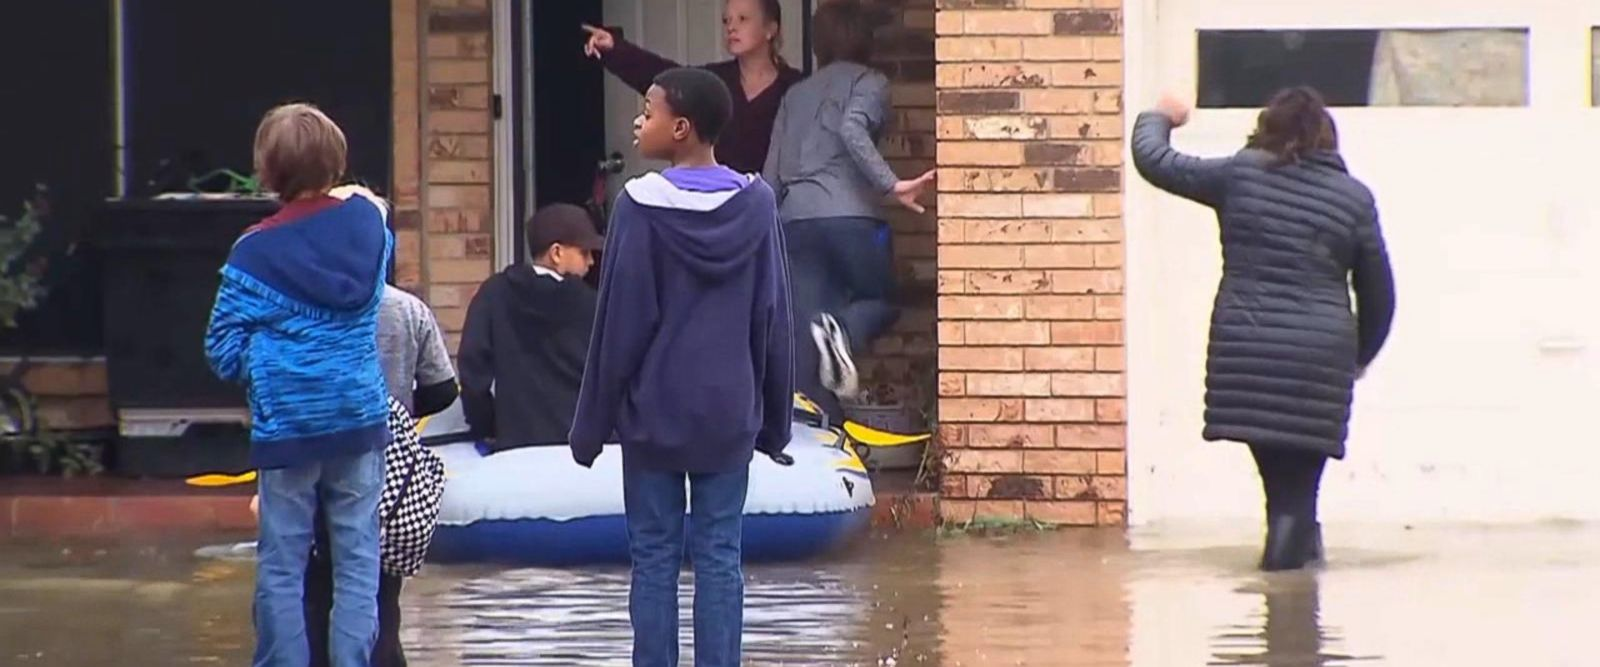 VIDEO: States of emergency declared as Midwest battles severe flash floods